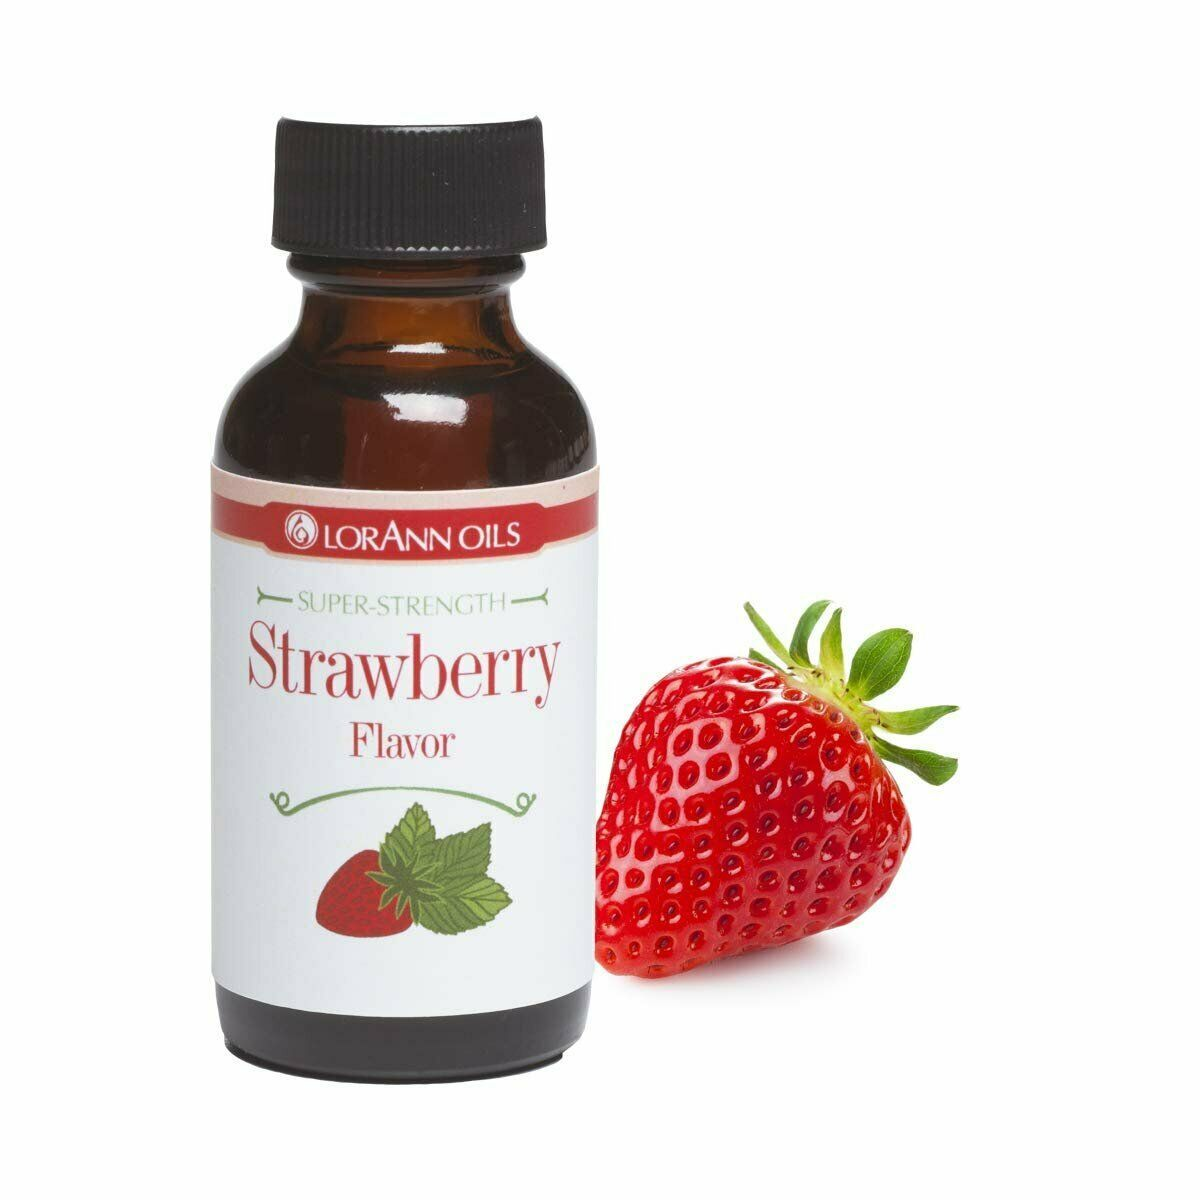 Primary image for LorAnn Super Strength Strawberry Flavor, 1 ounce bottle